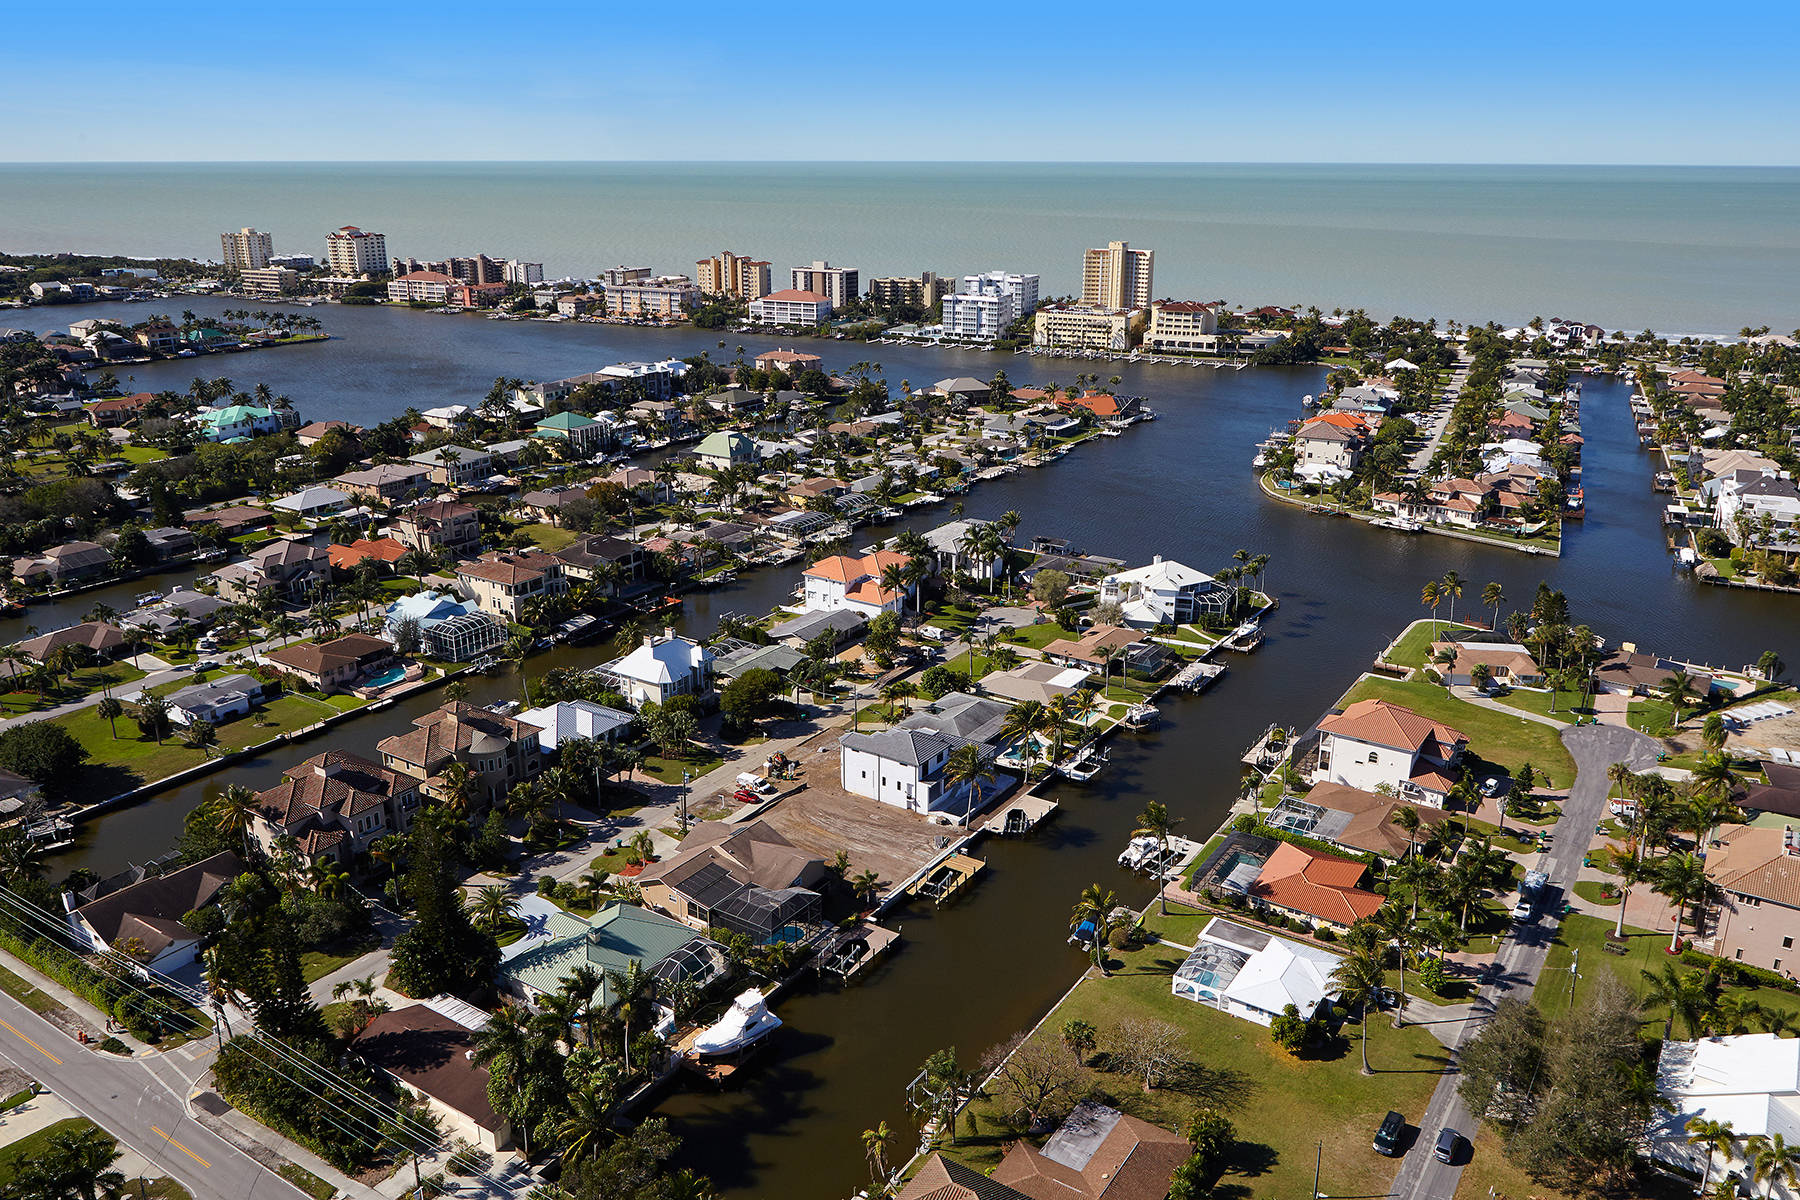 Property For Sale at VANDERBILT BEACH   CONNERS